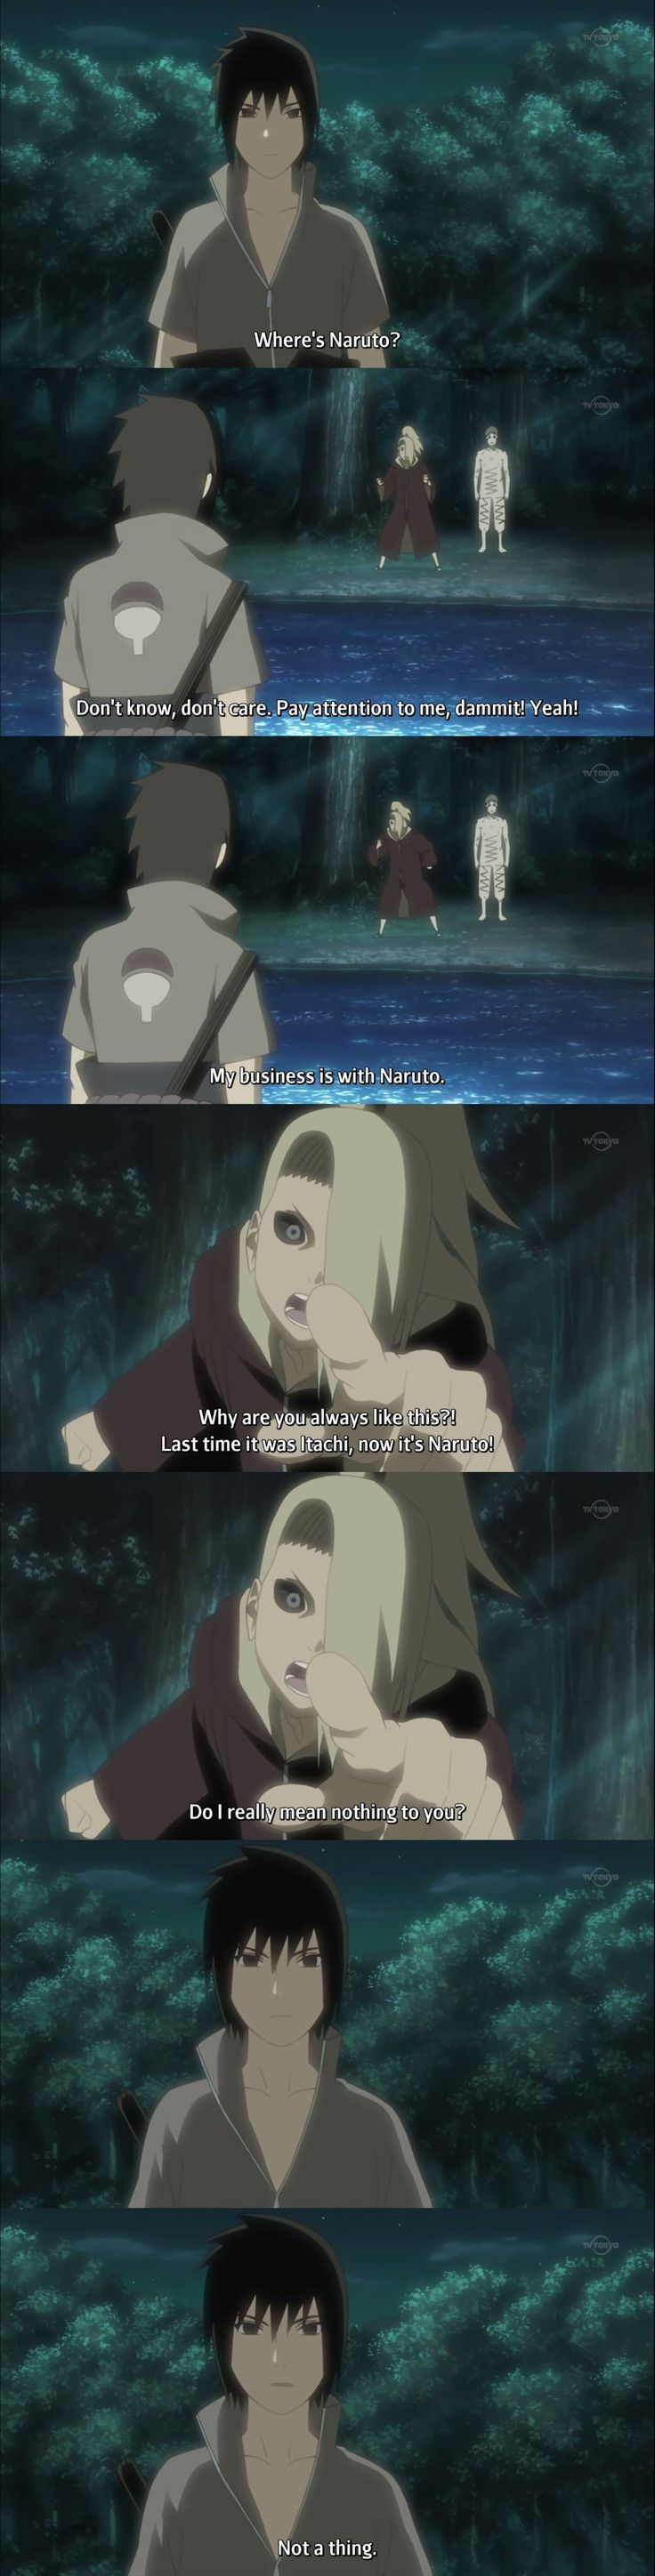 Naruto Shippuden Episode 280 I love Sasuke lol